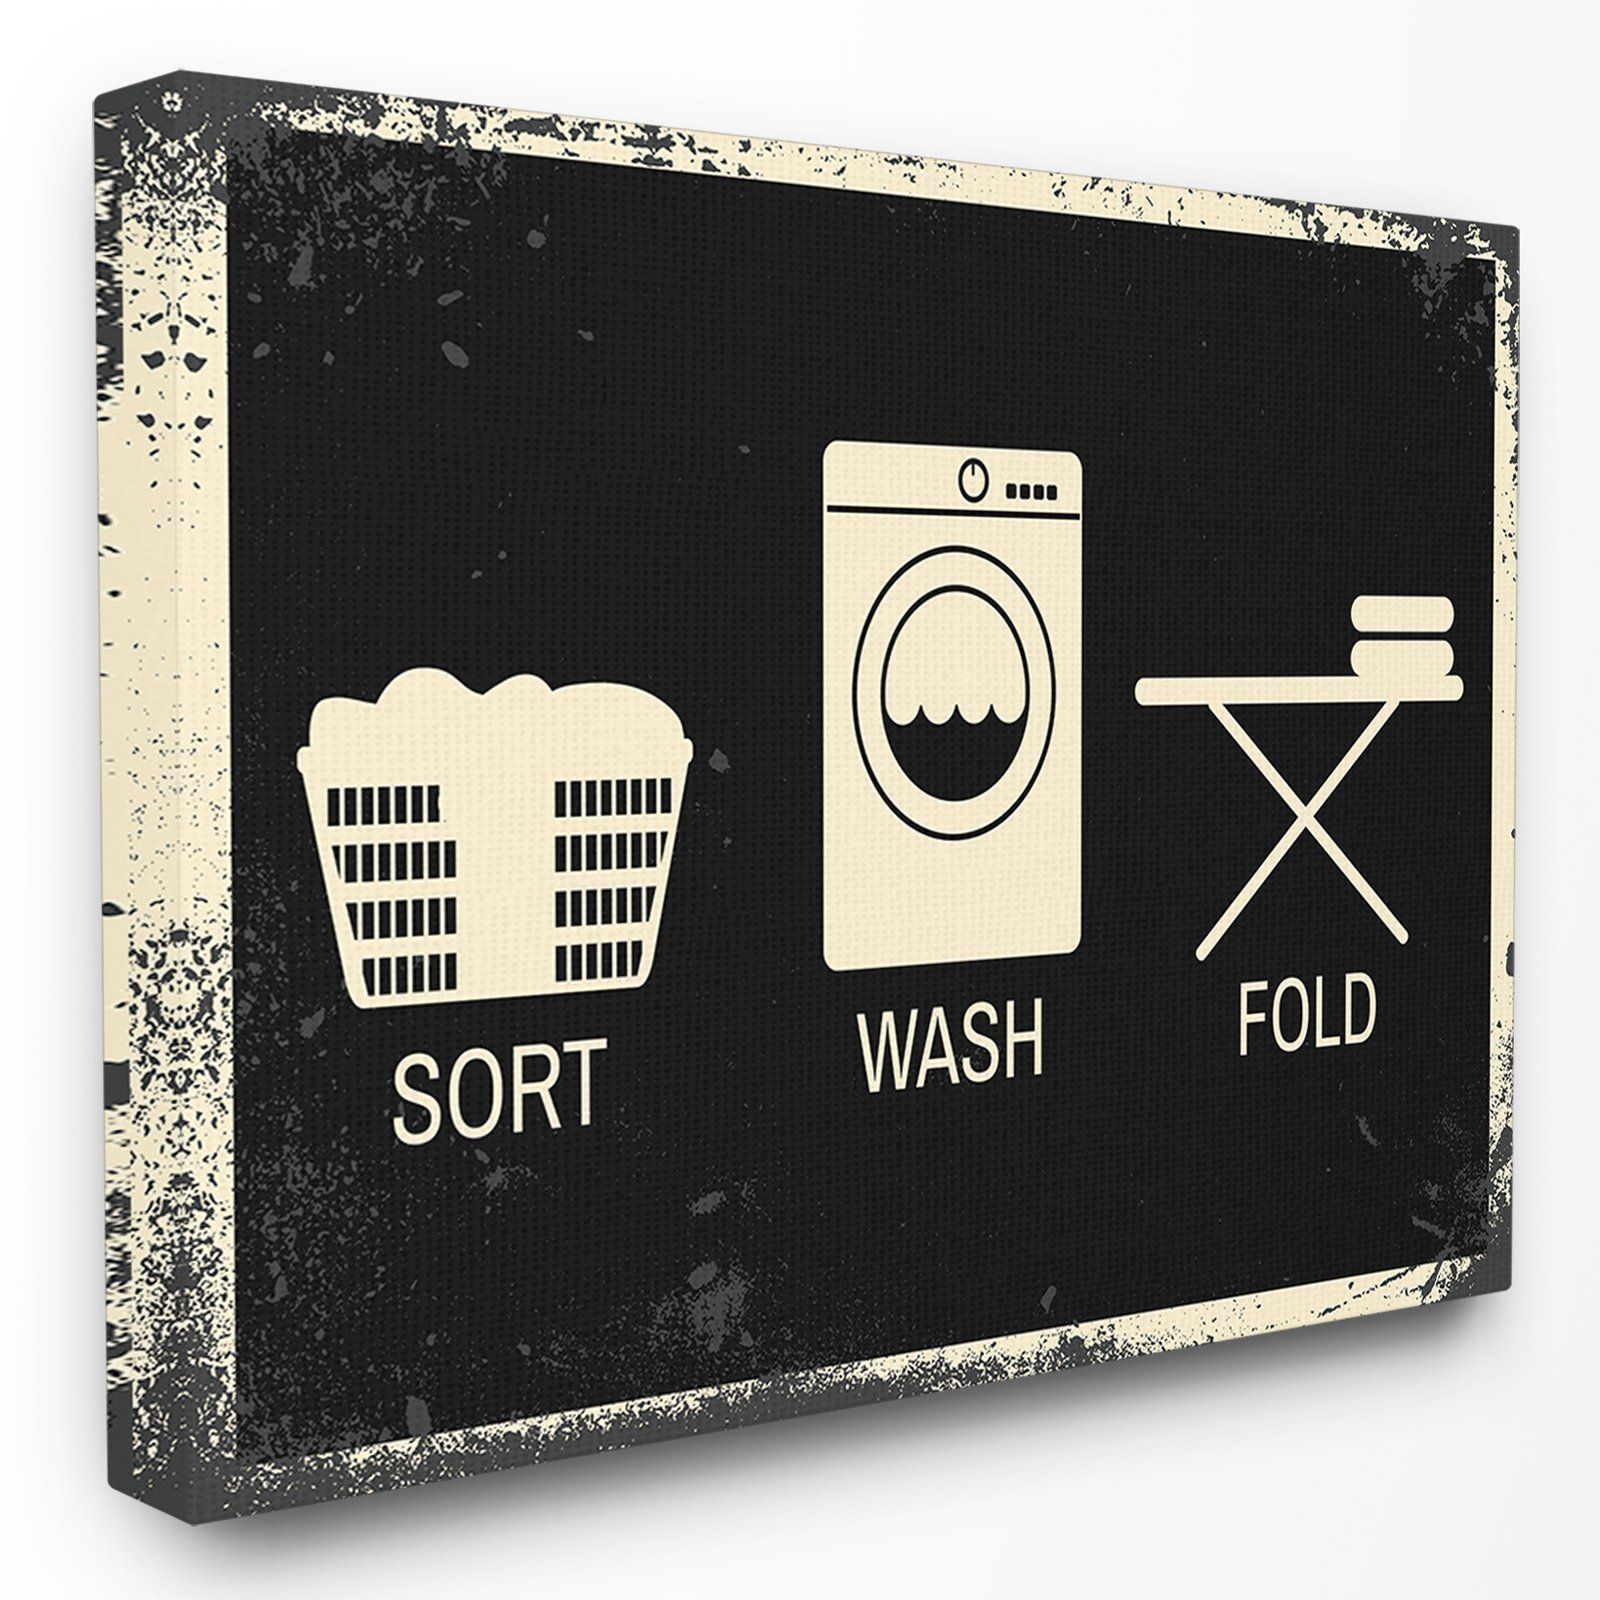 The Stupell Home Decor Collection Sort Wash Fold Symbols in Metal Laundry Room Wall Decor by Winston Porter (Image 20 of 30)